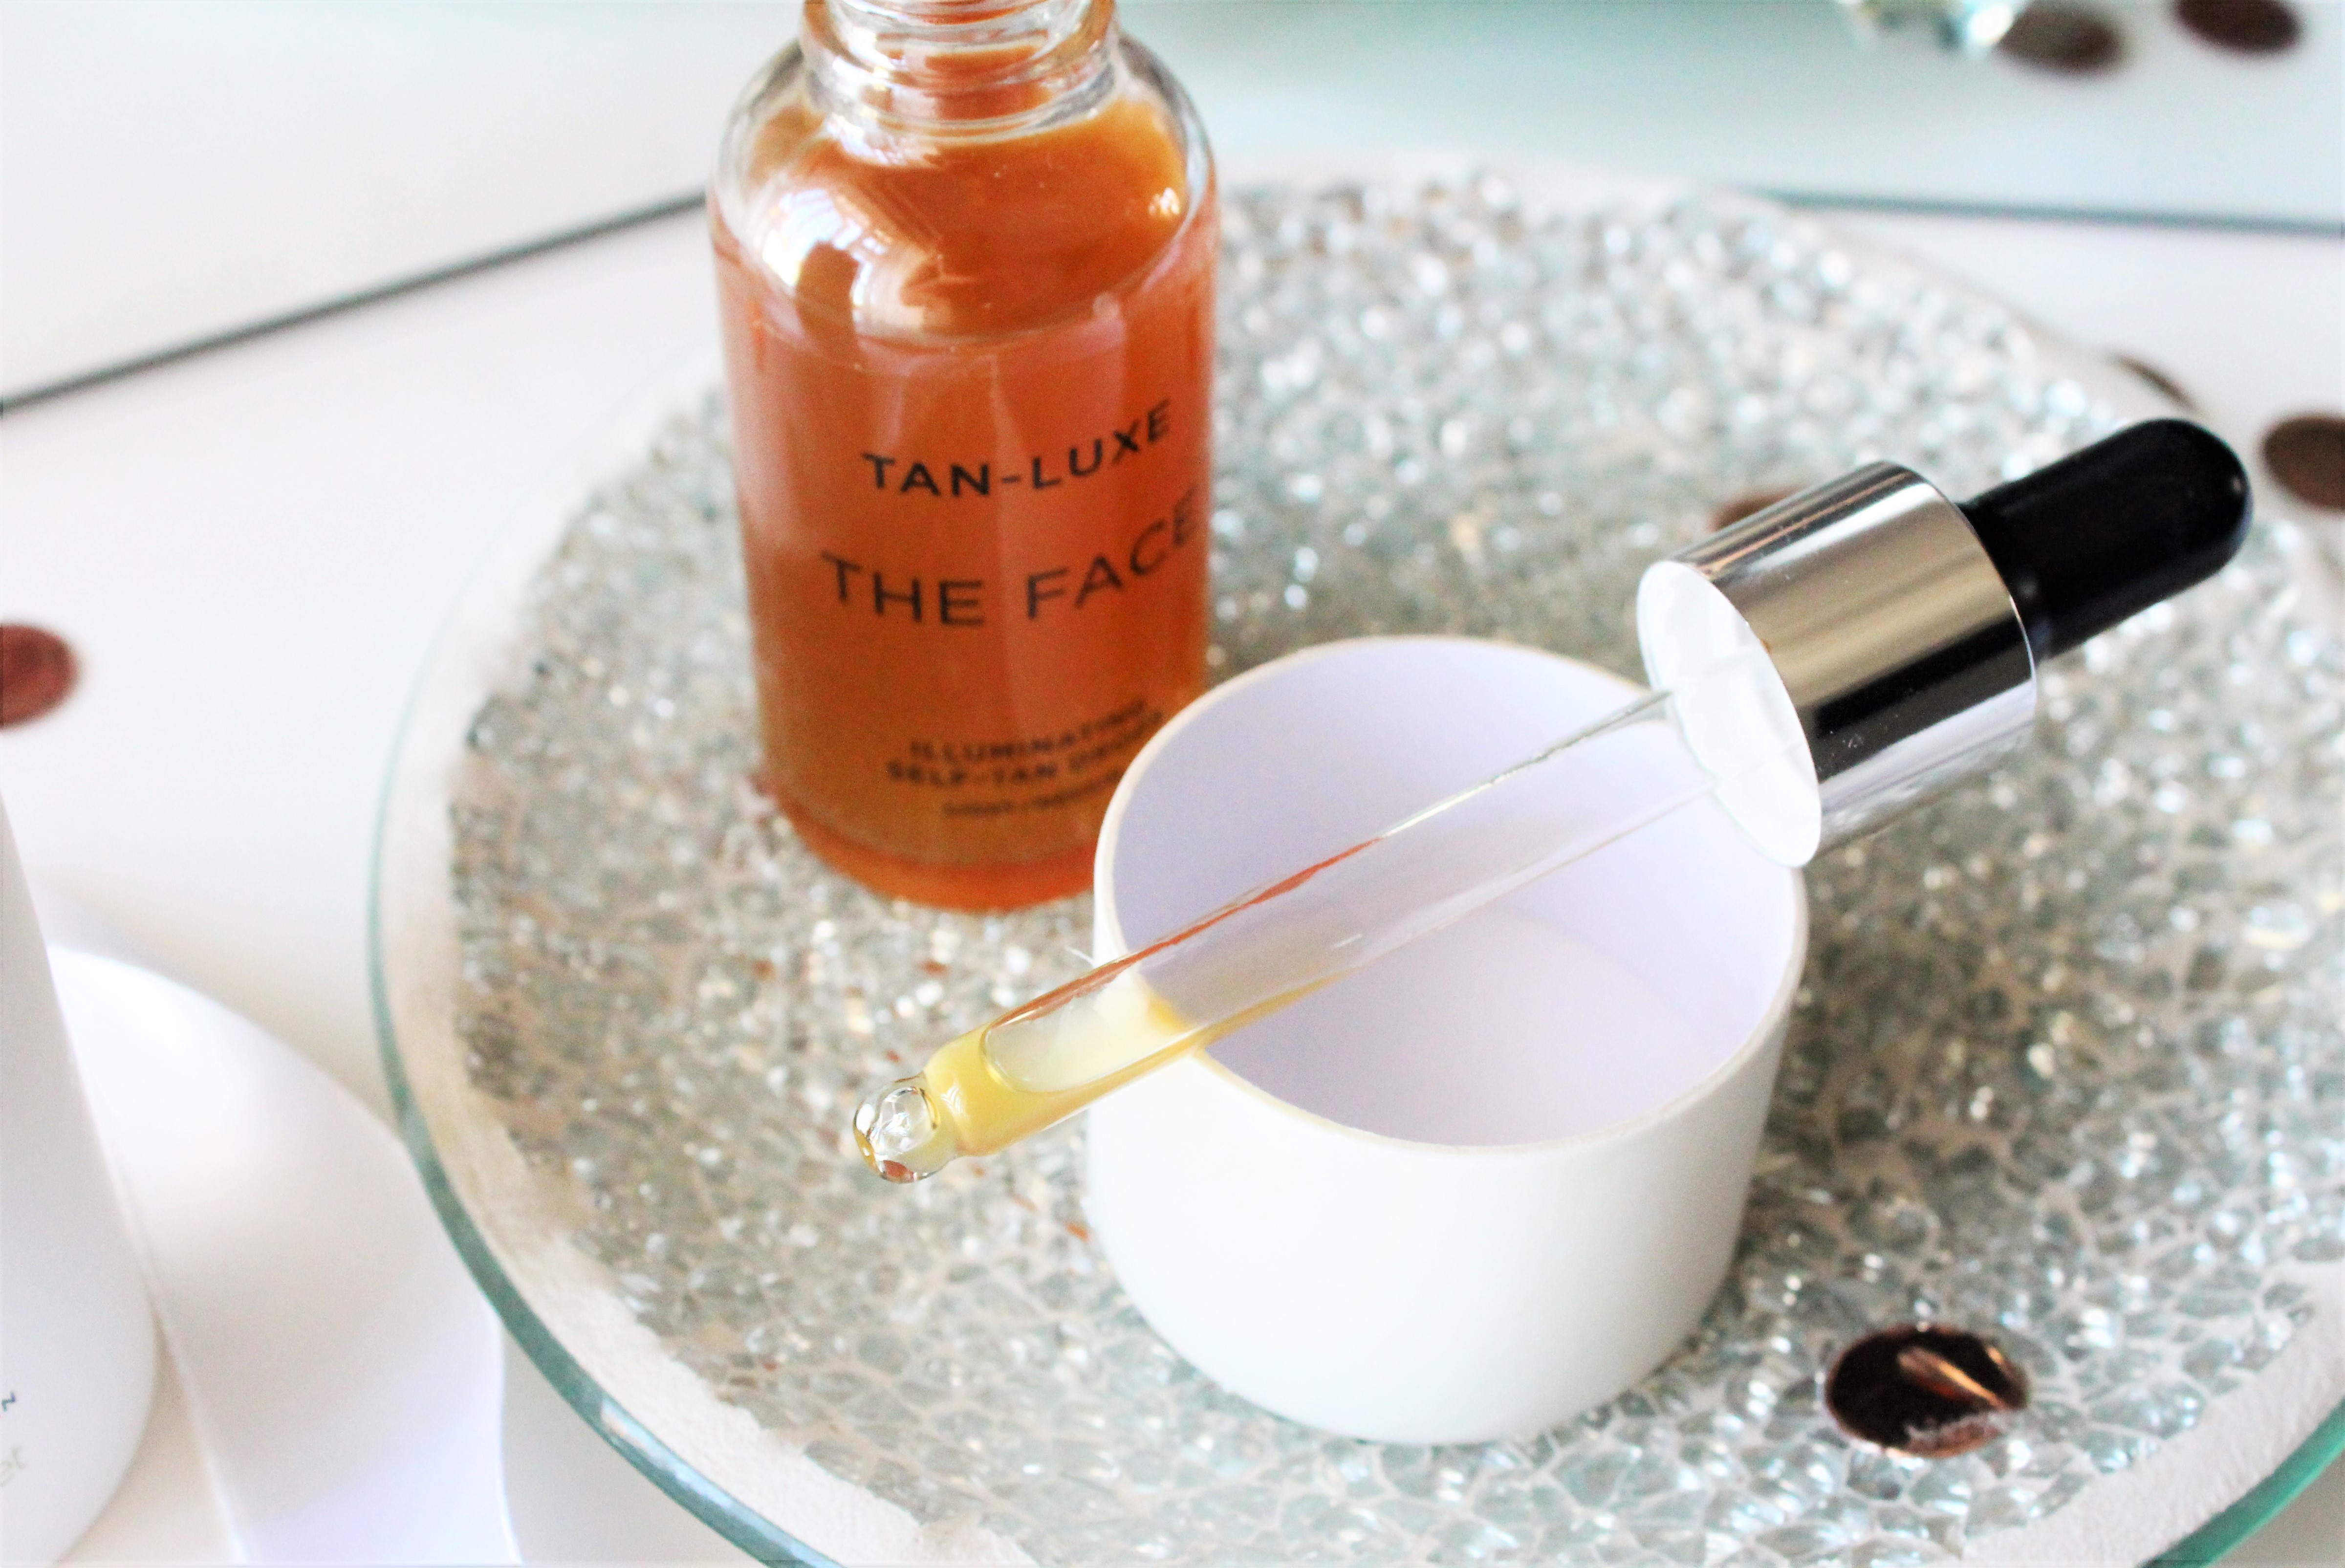 tan luxe face self tanning drops